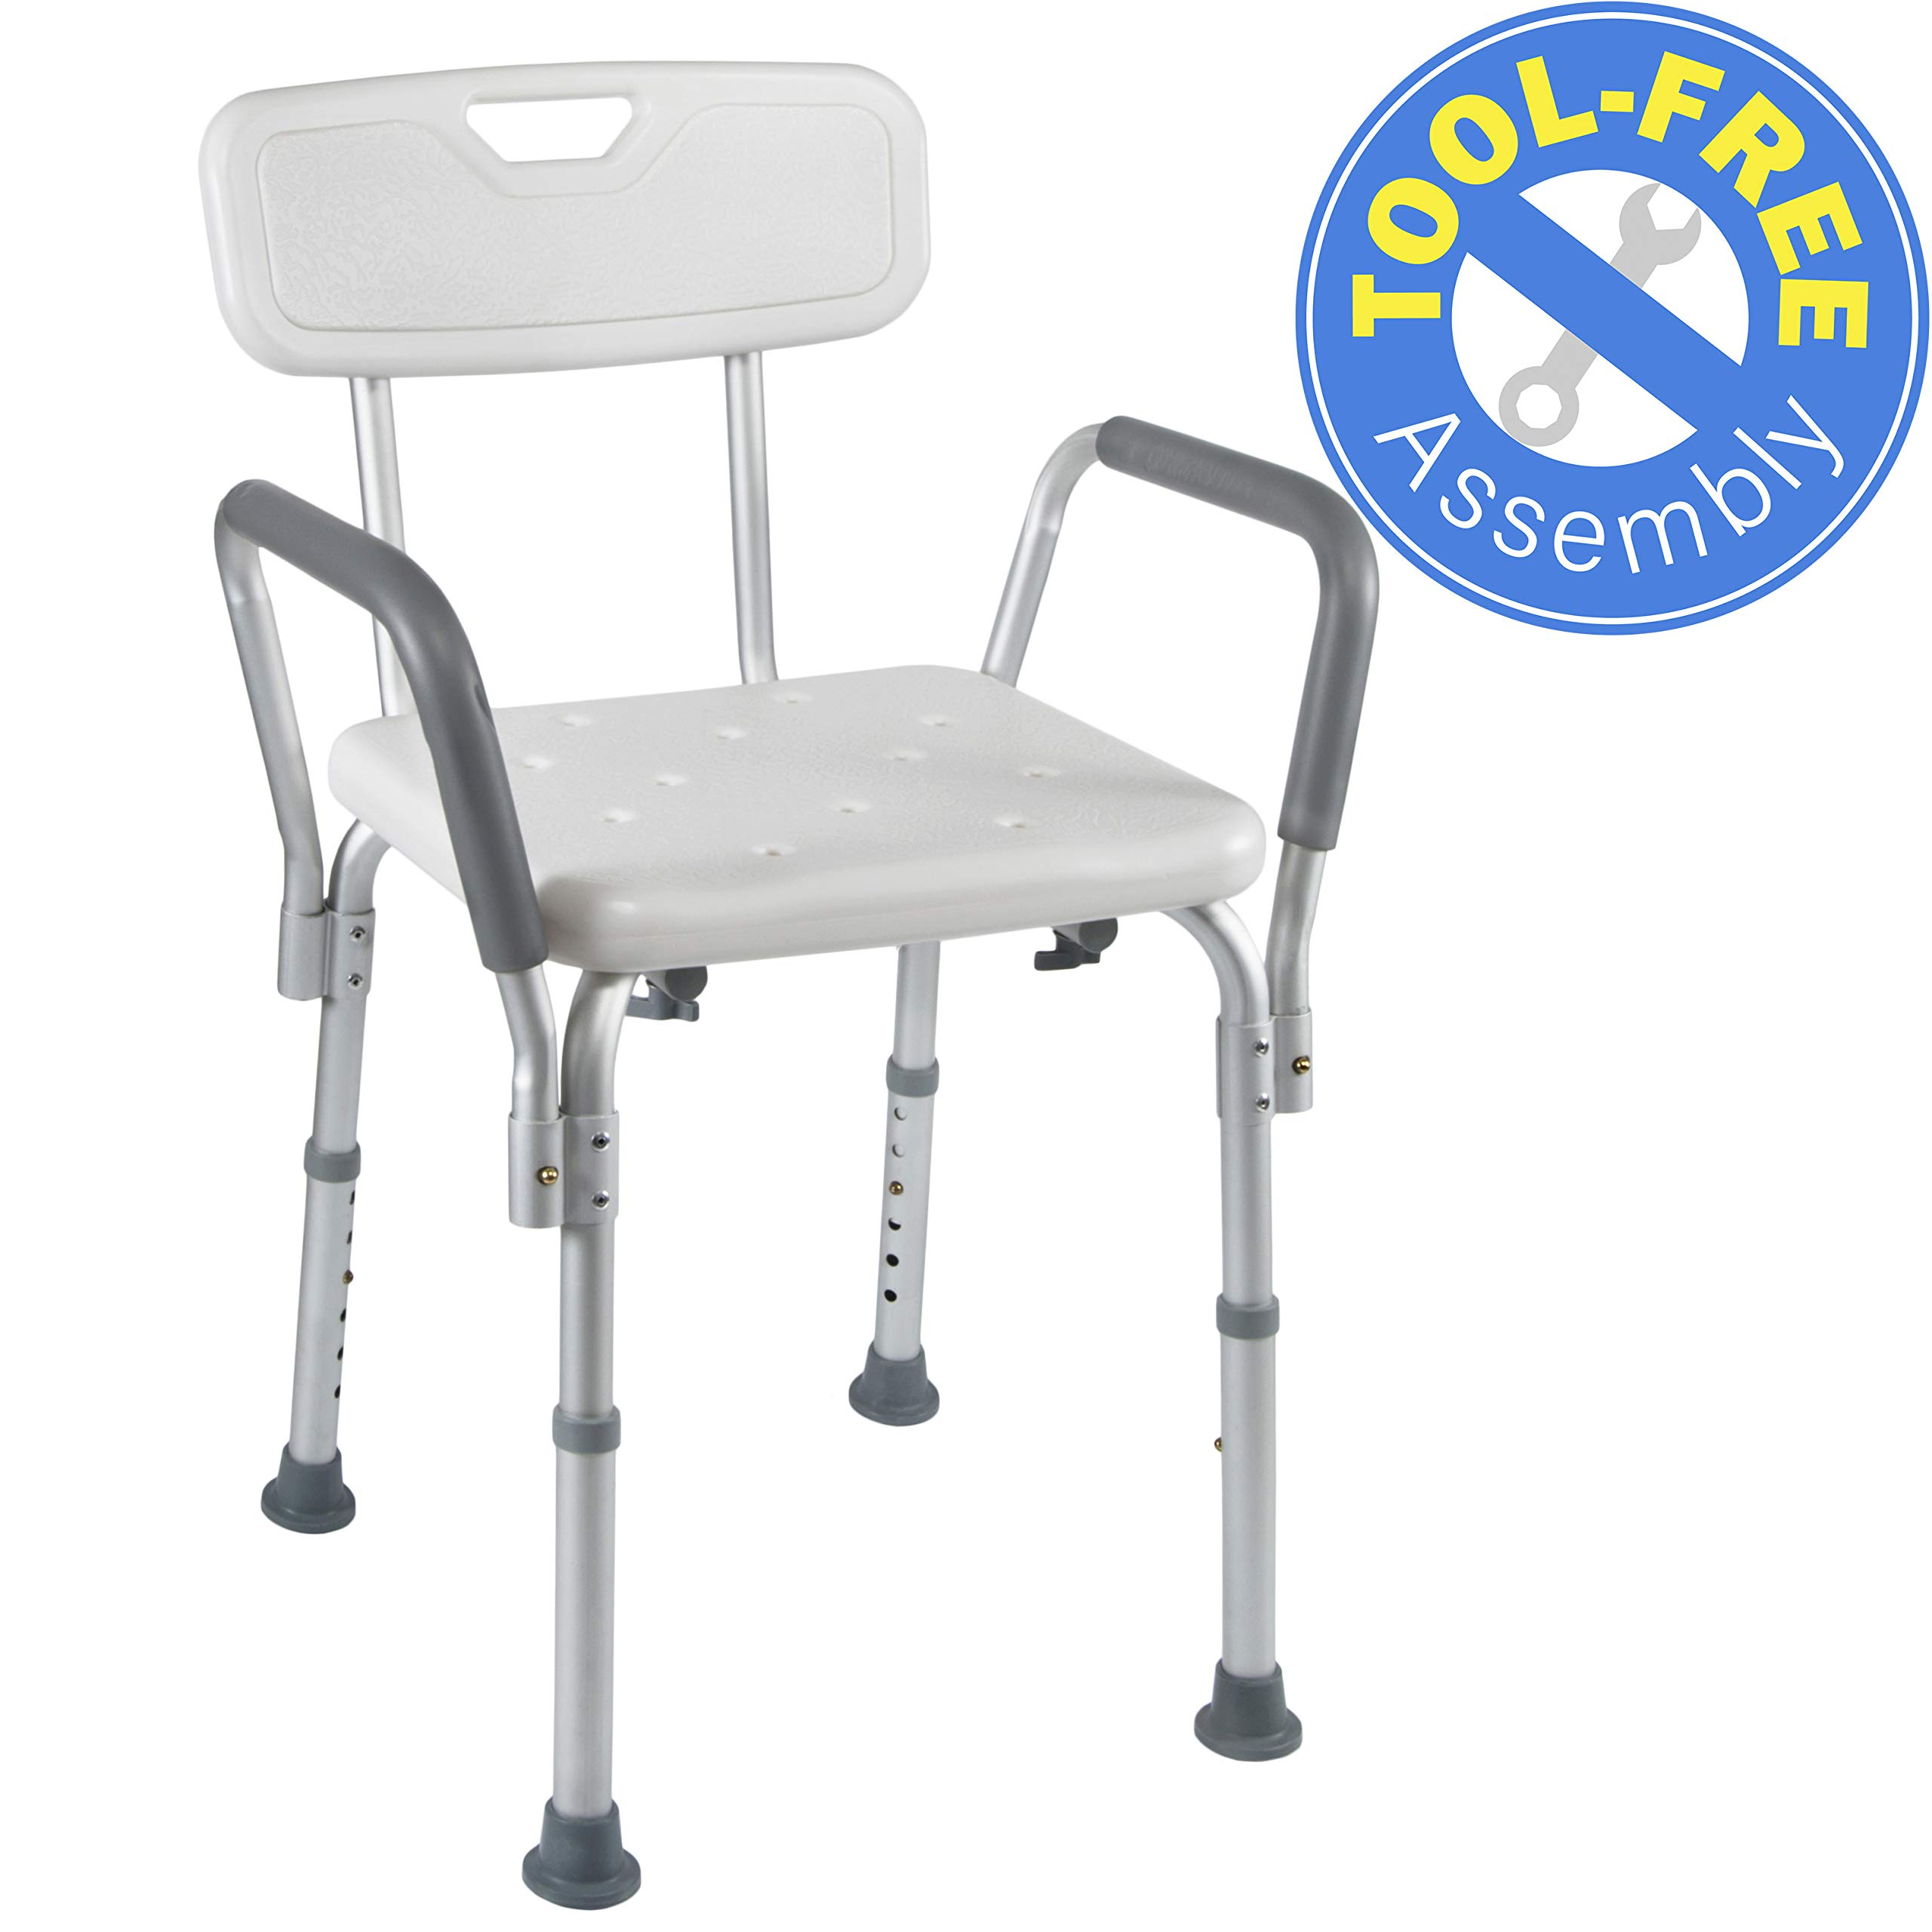 Vaunn Medical Tool-Free Assembly Spa Bathtub Shower Lift Chair, Portable Bath Seat, Adjustable Shower Bench, White Bathtub Lift Chair with Arms by Vaunn